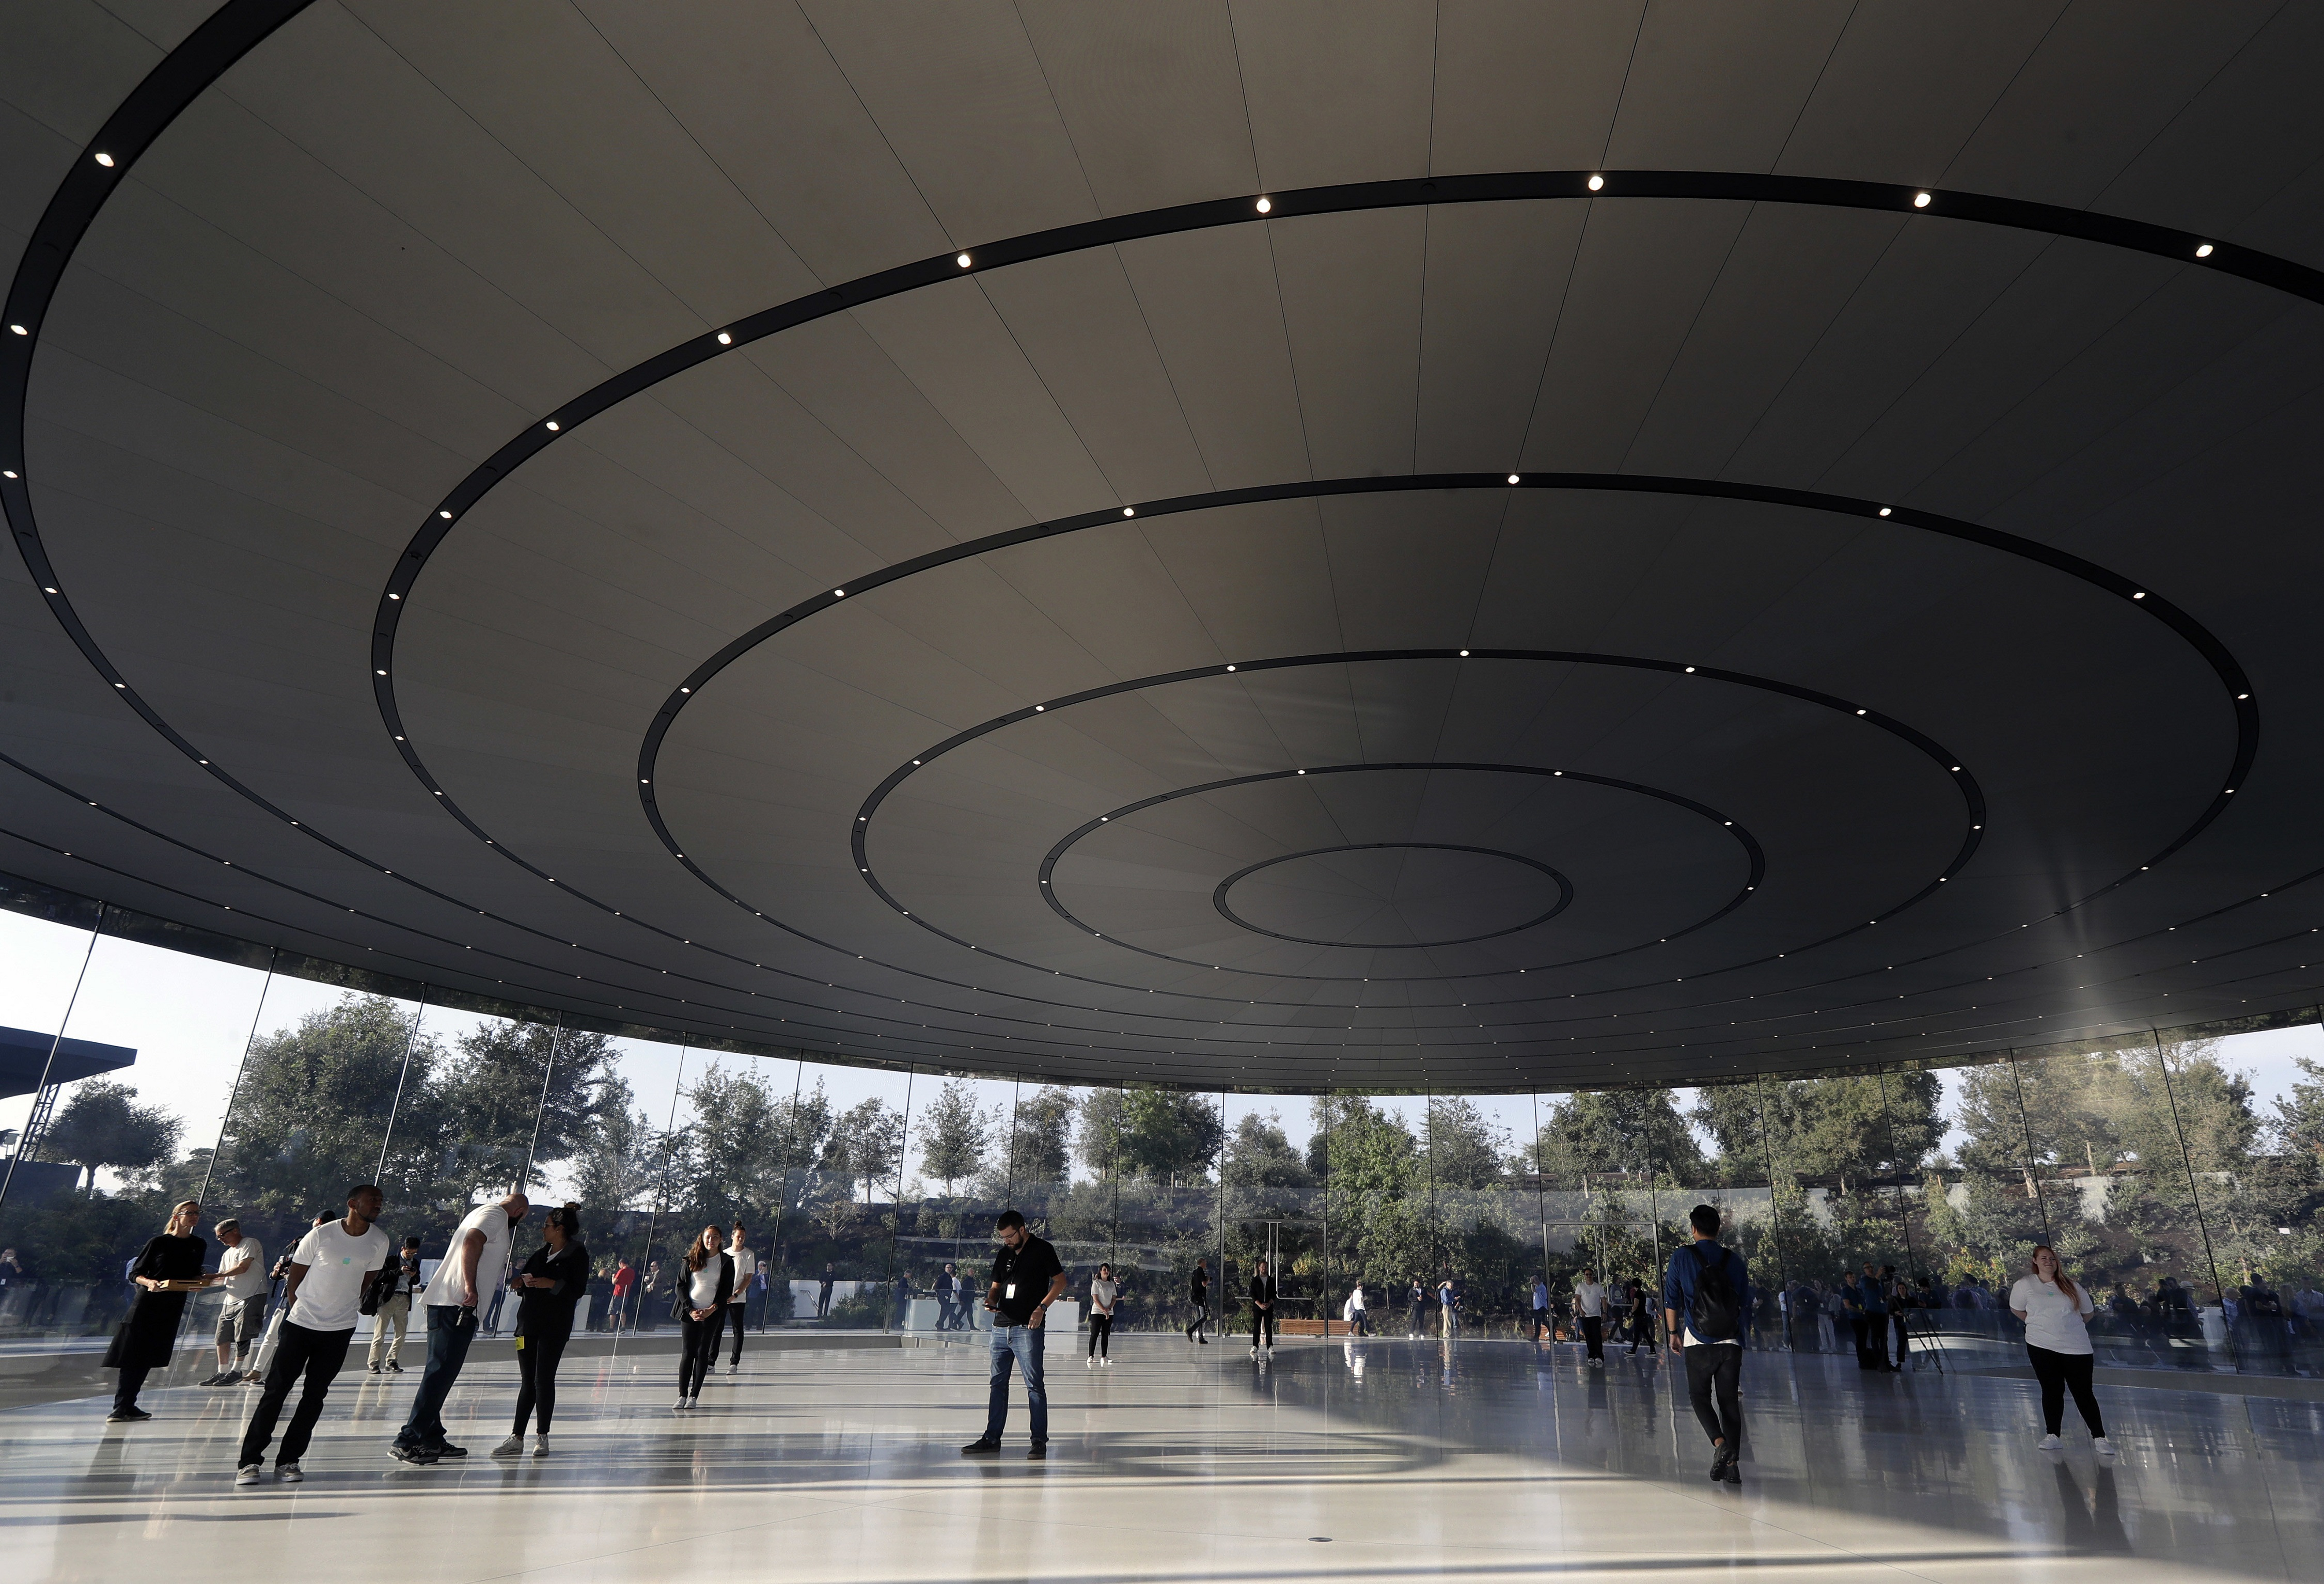 A view of the ceiling at Apple Park